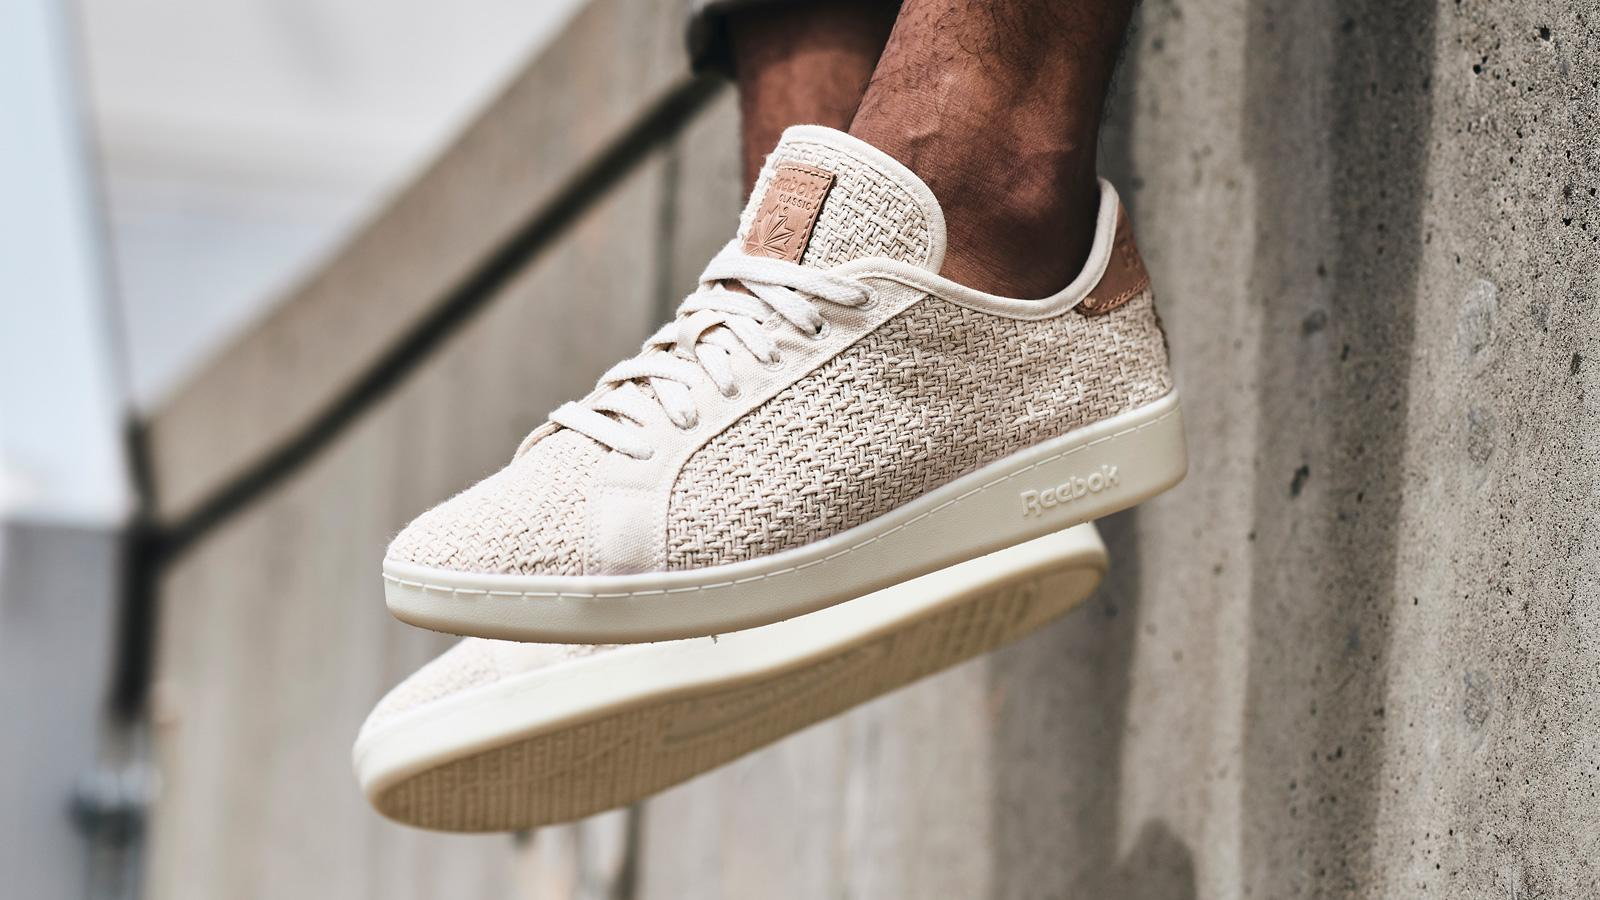 plant-based shoes go on sale for $95